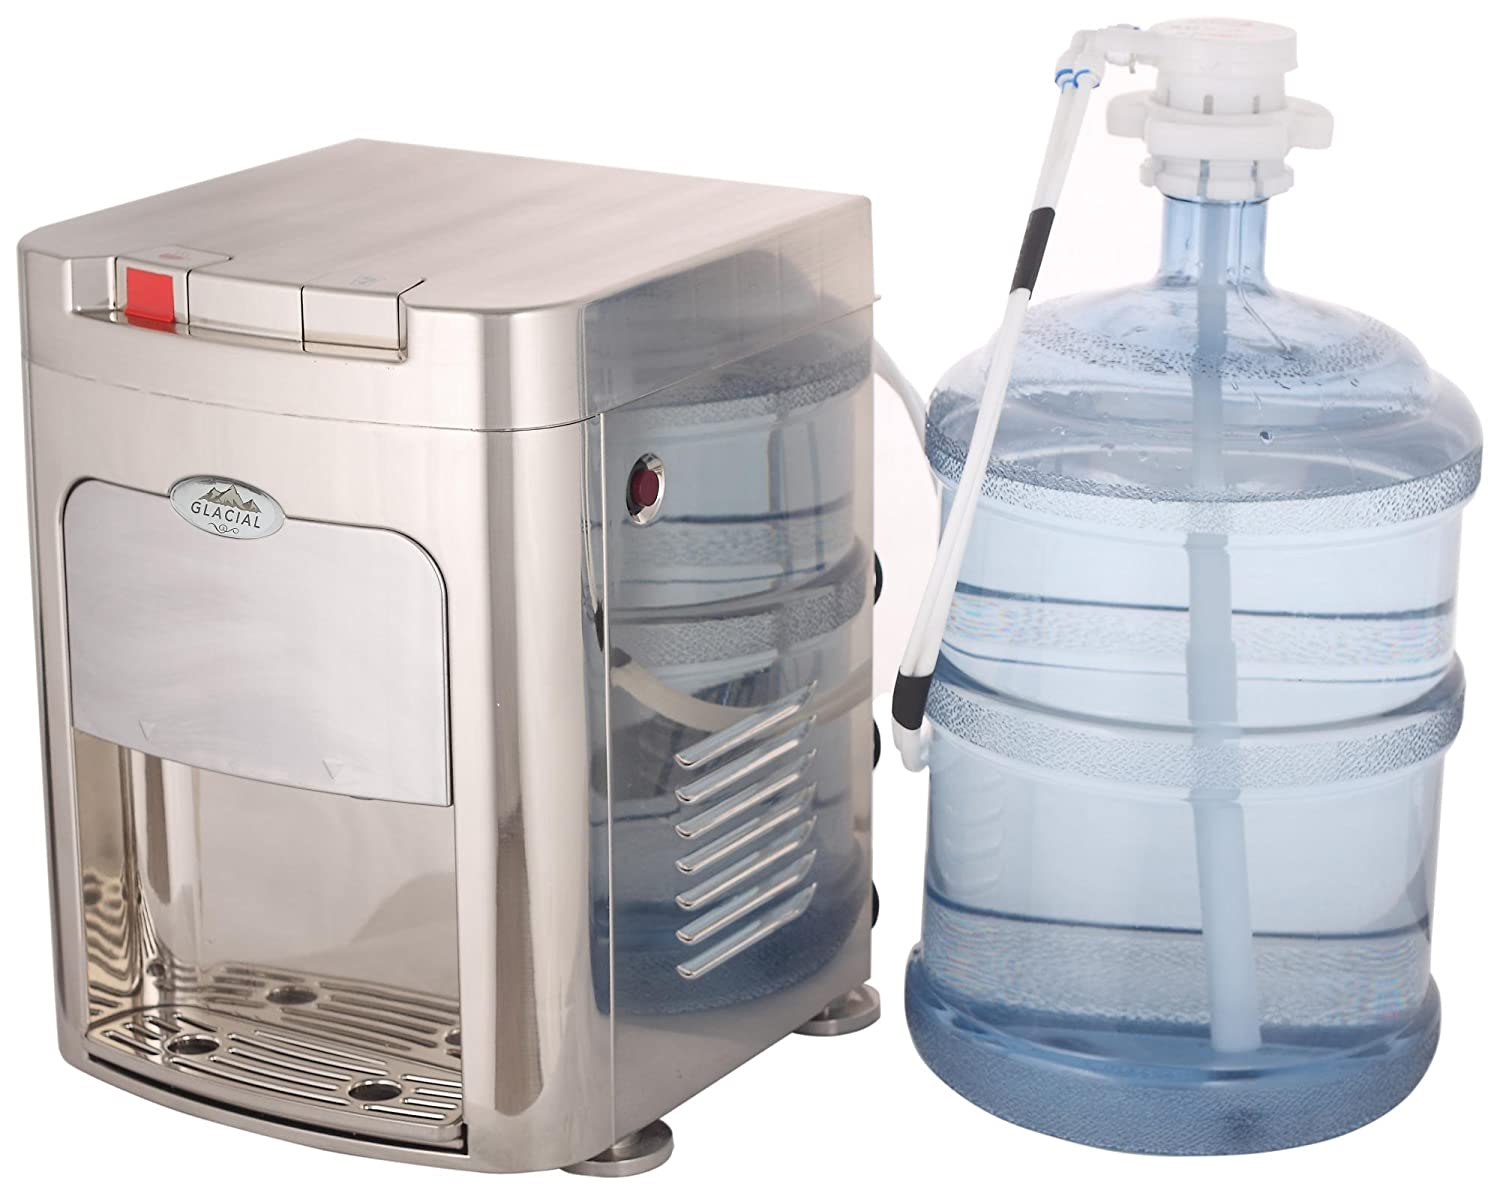 Amazon.com: Glacial UnderCabinet Professional Water Cooler With Hot U0026 Cold:  Cold Water Dispenser: Kitchen U0026 Dining